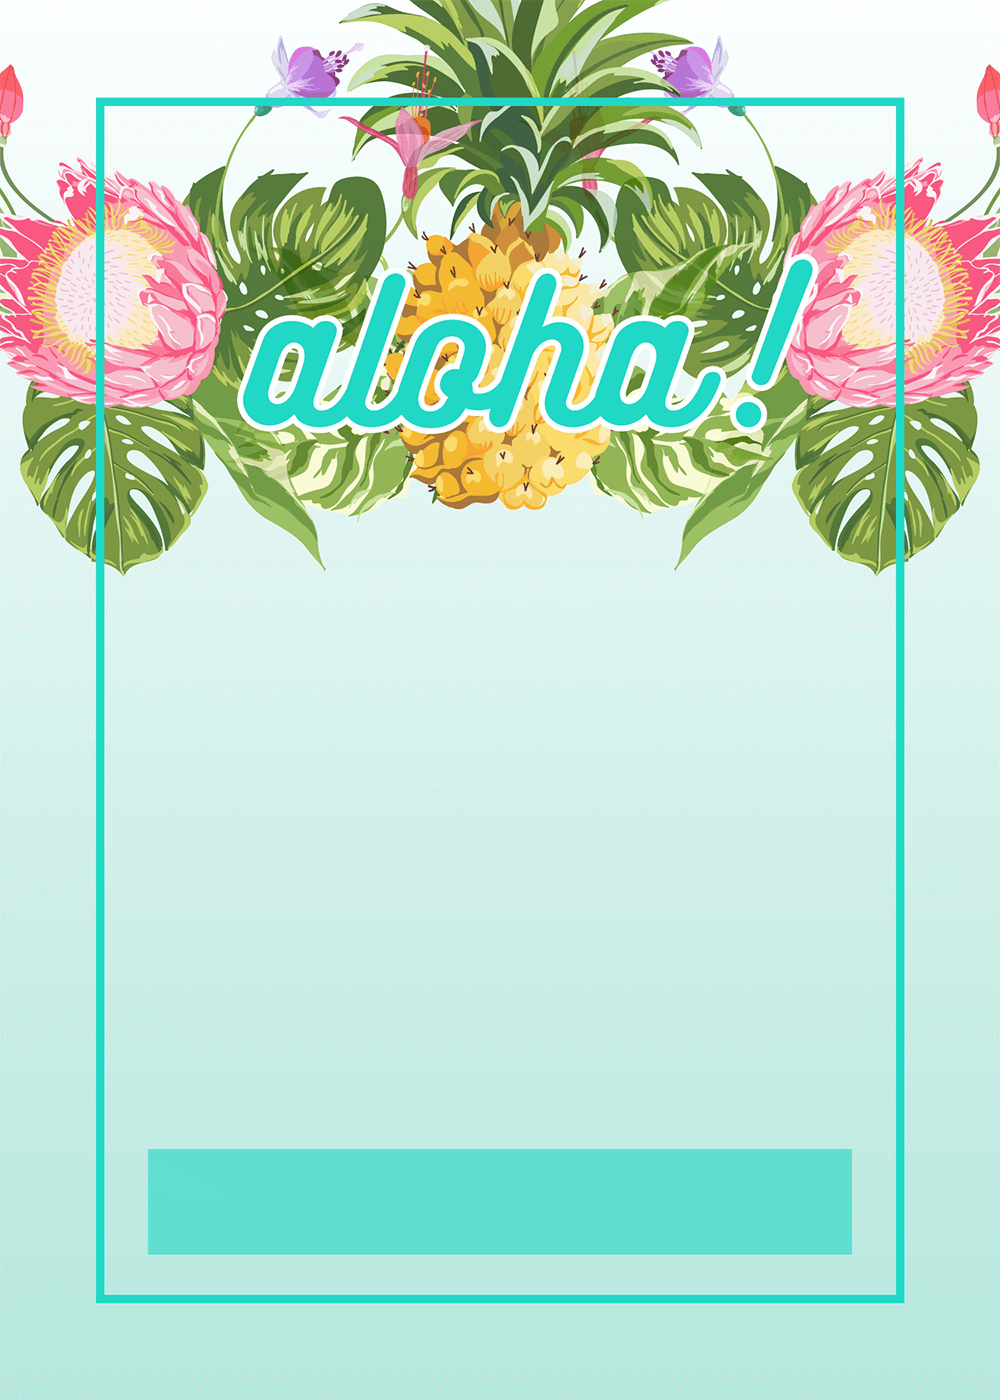 Pineapple Luau Perimeter - Free Printable Birthday Invitation - Free Printable Luau Baby Shower Invitations